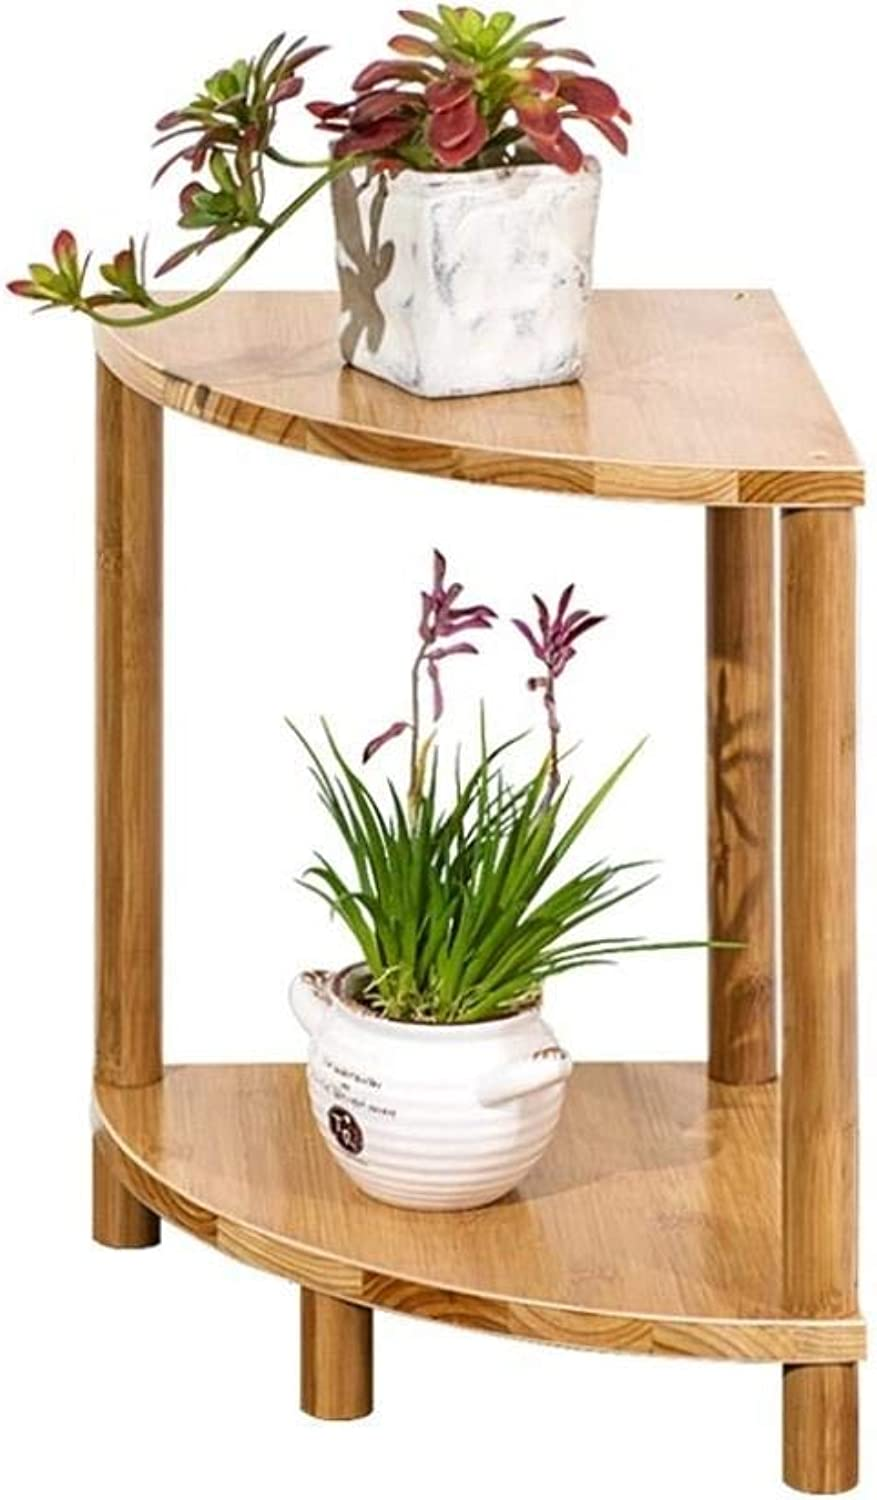 Flower Stand-Bamboo Vine Floor-Standing Multi-Layer Fan-Shaped Plant Flower Pot Display Rack Storage Rack, Suitable for Flower Shop Living Room Balcony (color   S)